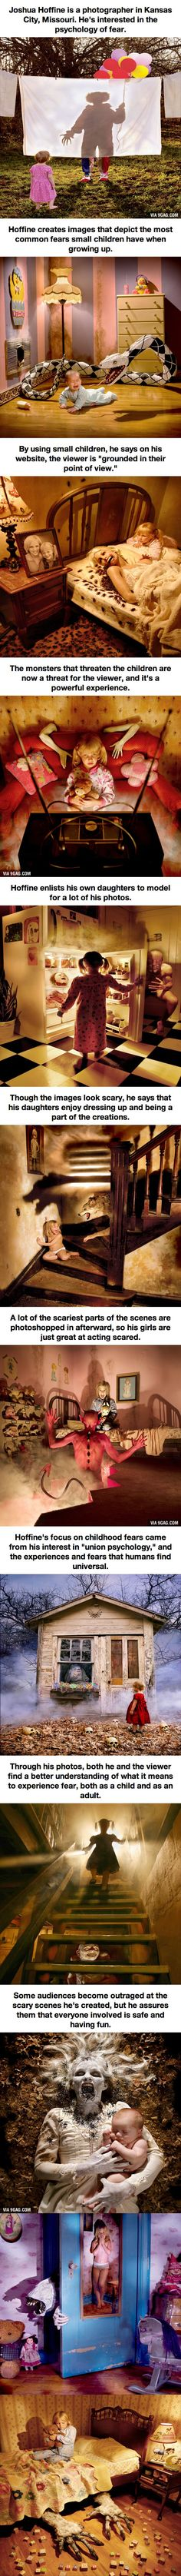 12 Seriously Disturbing Pictures Of Children's Nightmares...